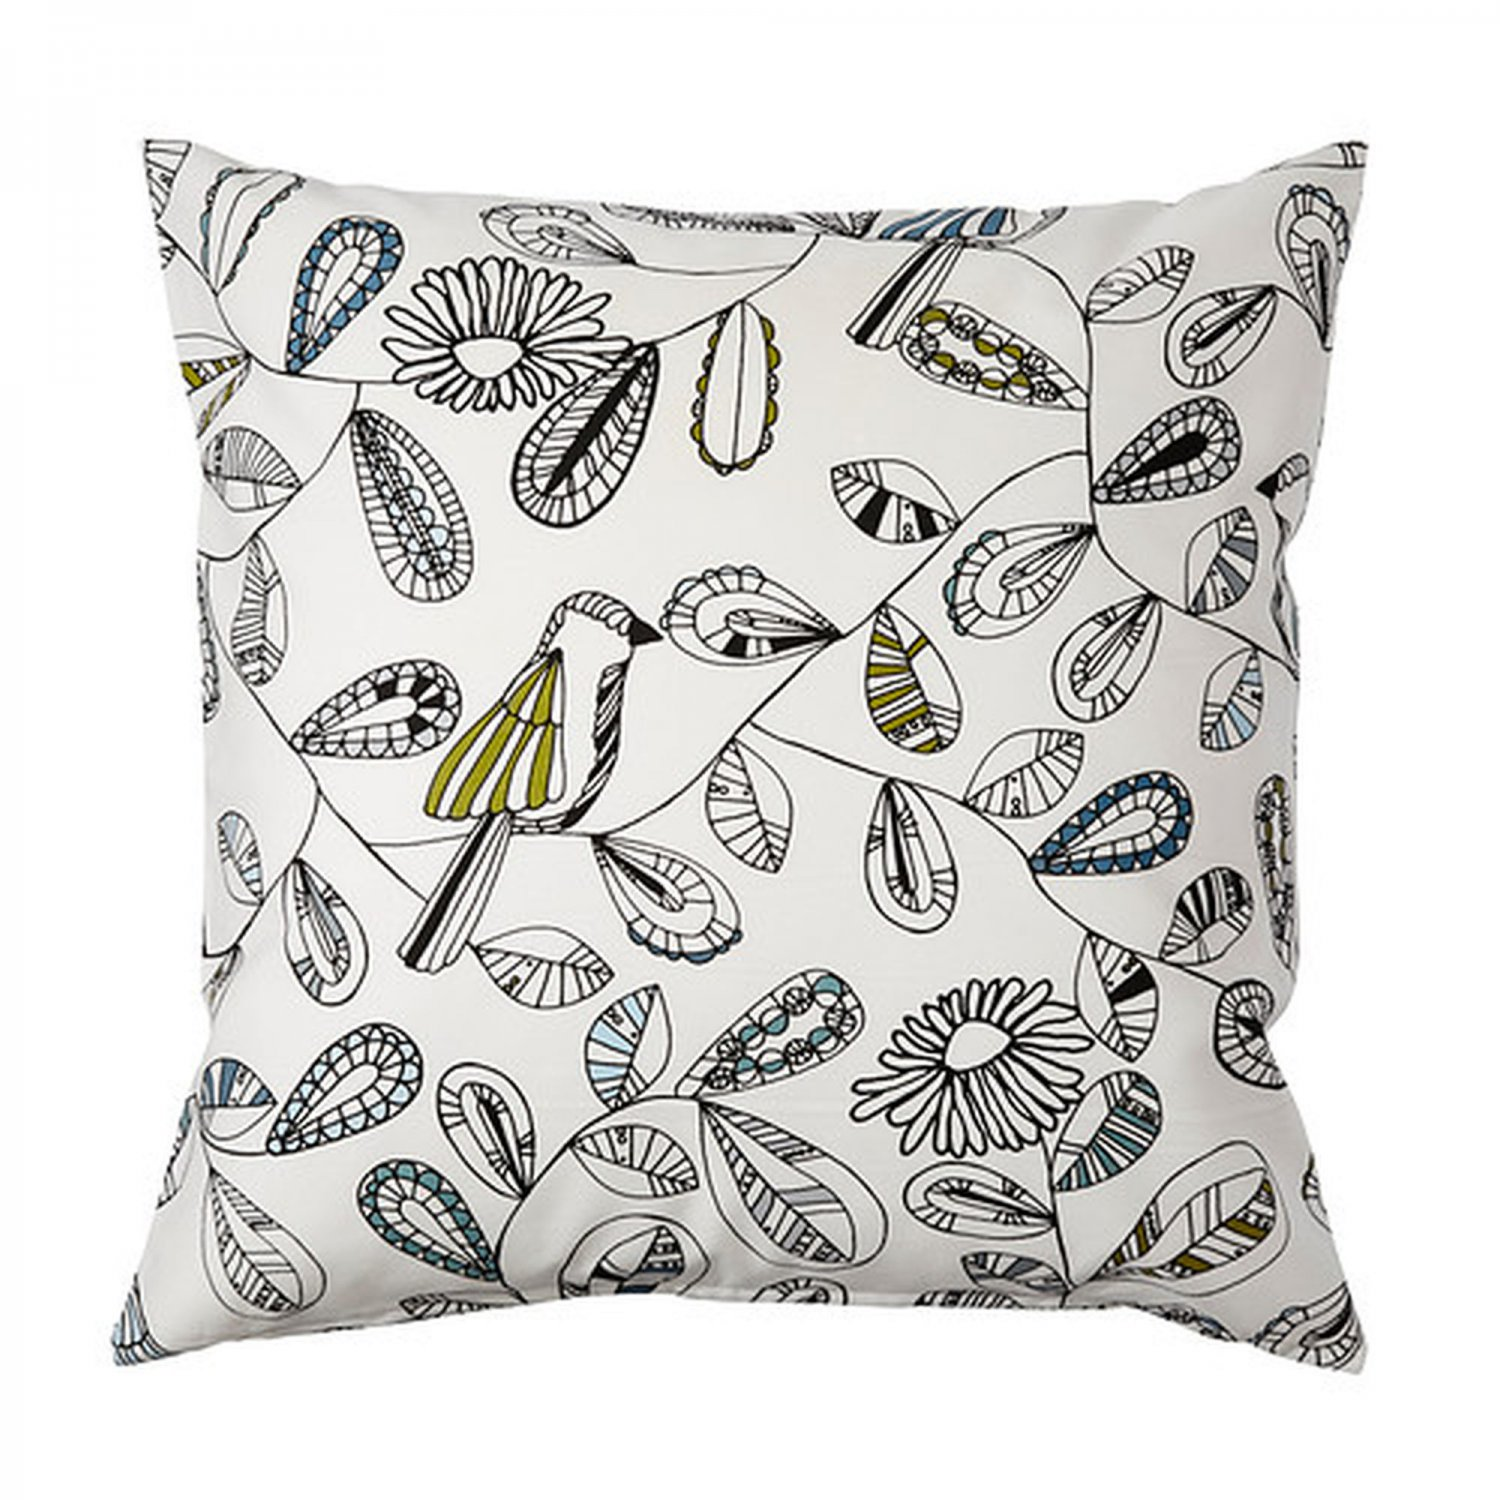 ikea snabbvinge cushion cover pillow sham birds flowers. Black Bedroom Furniture Sets. Home Design Ideas